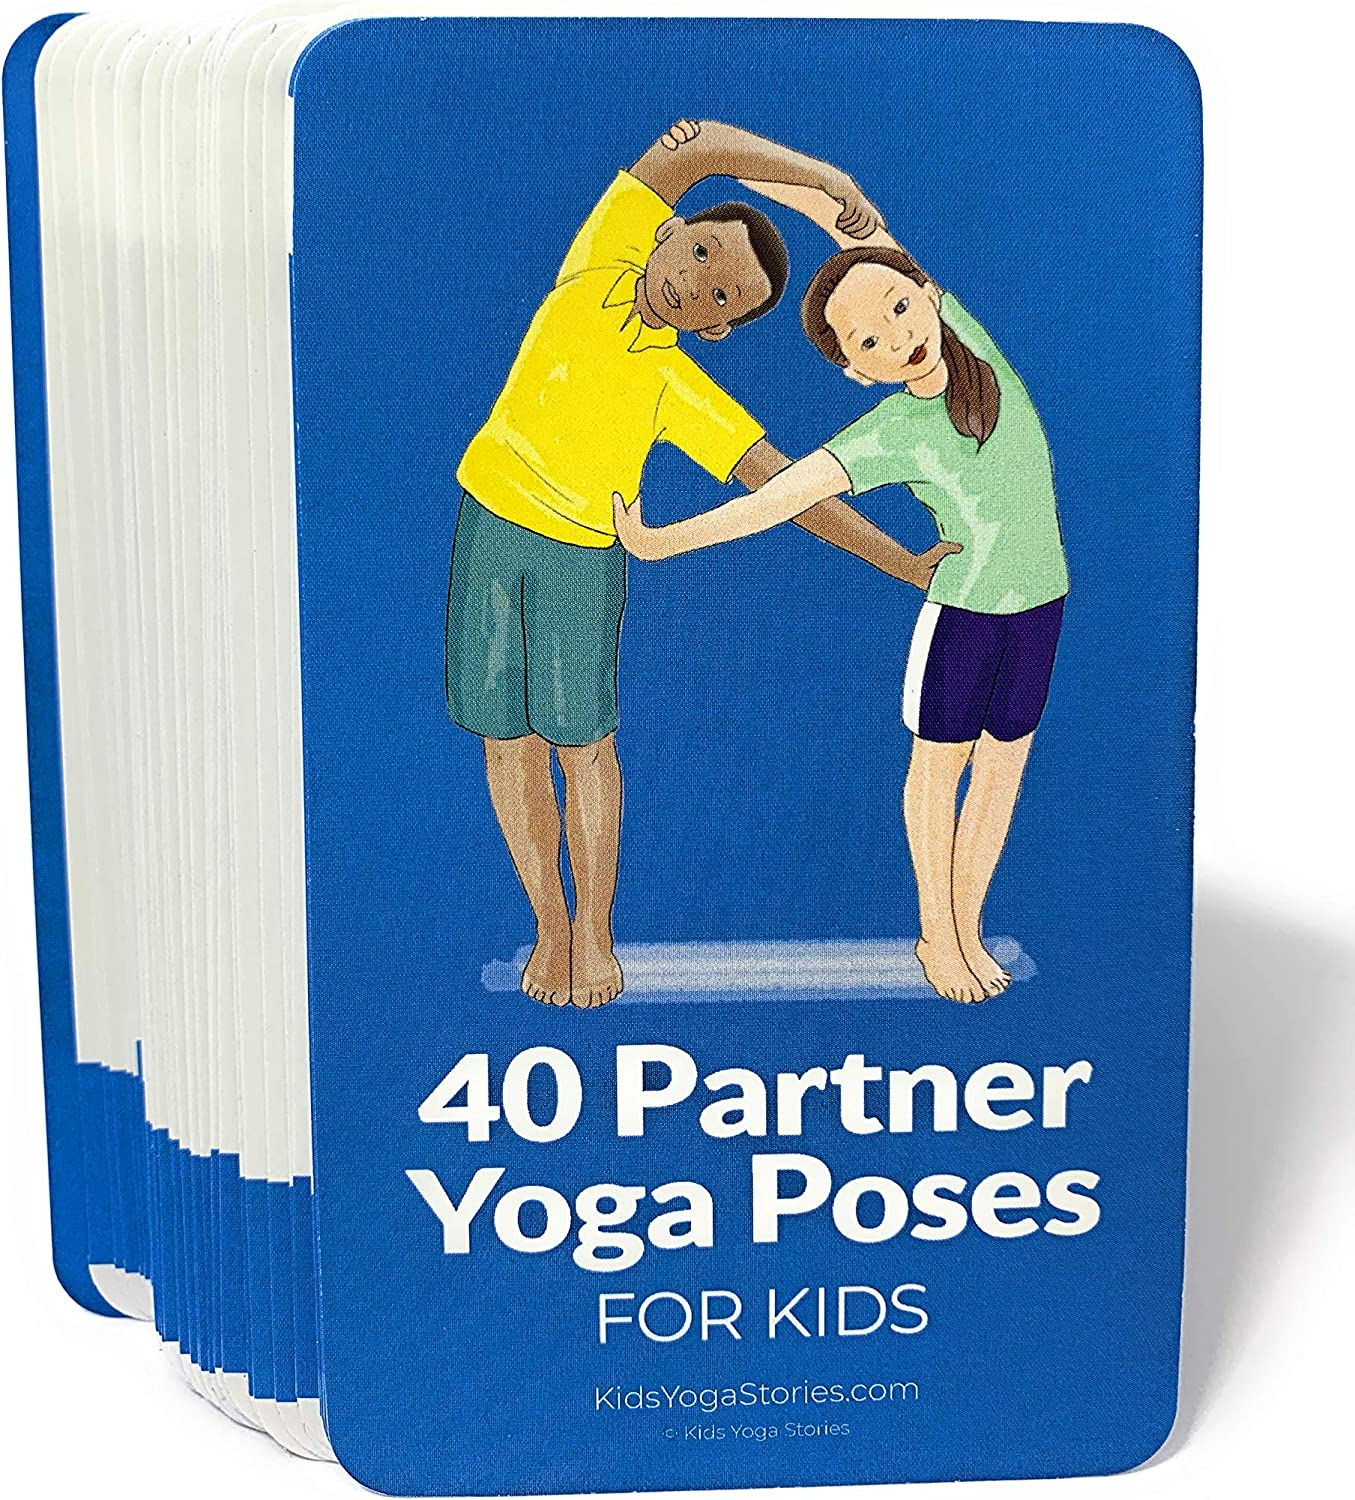 Amazon Com 40 Partner Yoga Poses Cards For Kids Connect Be Active And Have Fun Toys Games